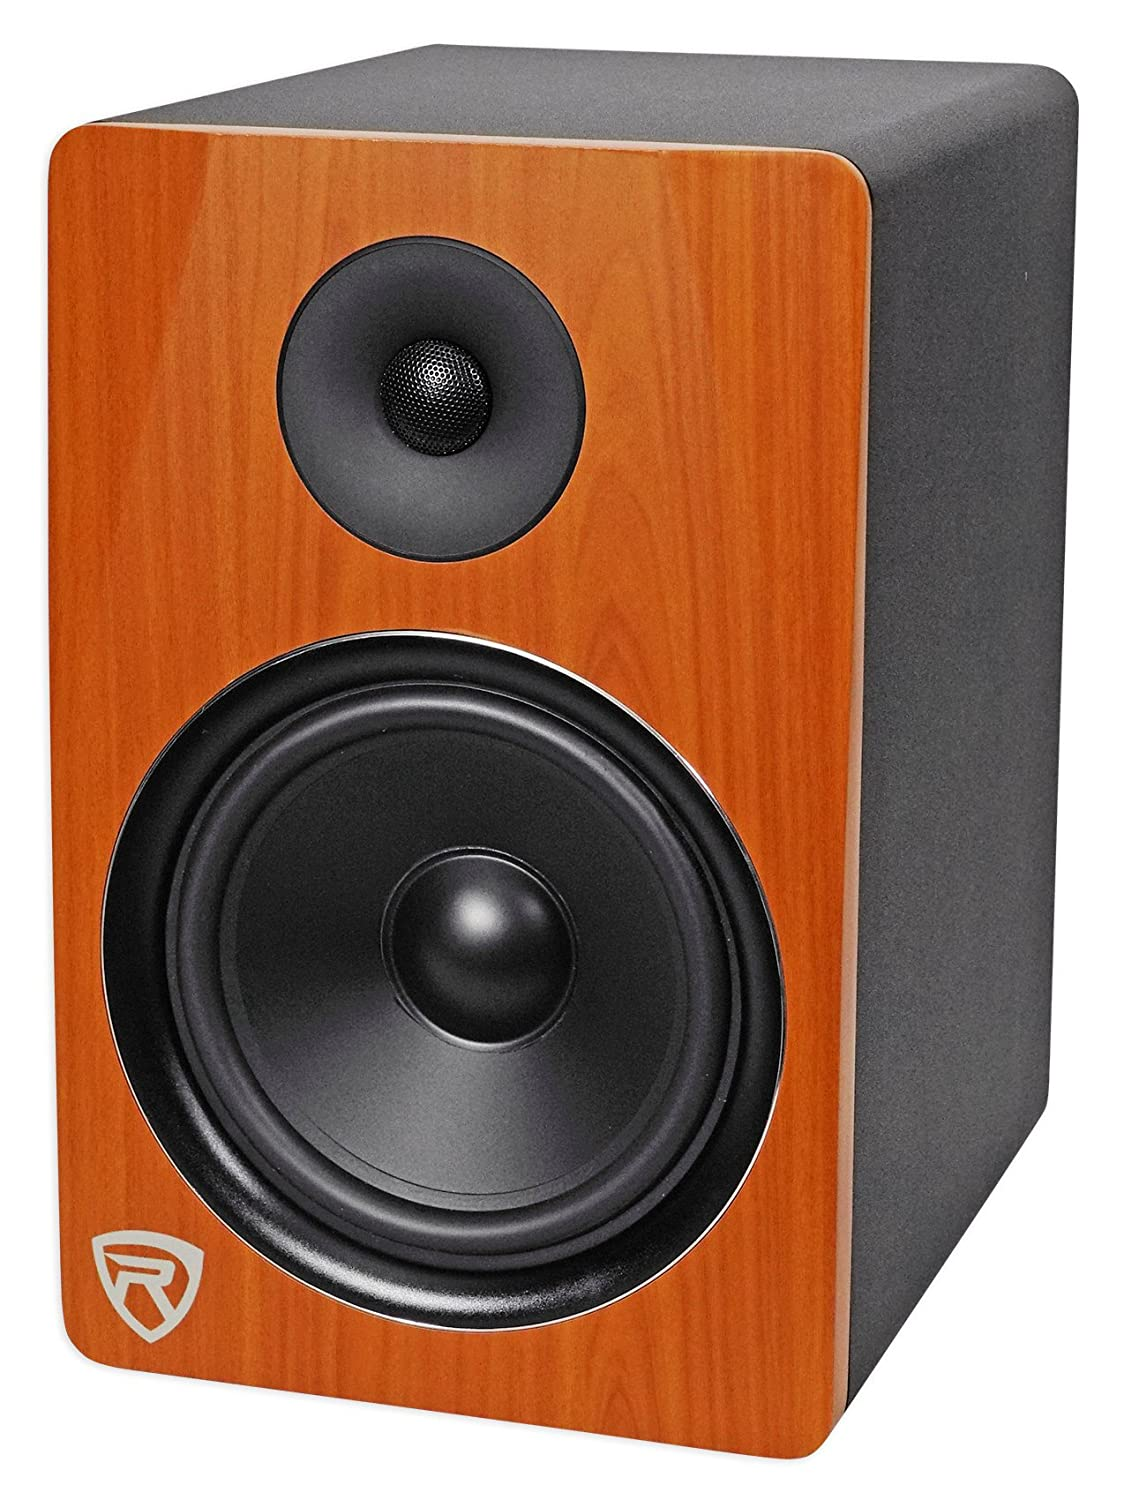 Rockville Dpm8c 8 2 Way 300w Wood Active Powered Studio M Audio Bx5a Circuit Diagram Monitor Speaker Musical Instruments